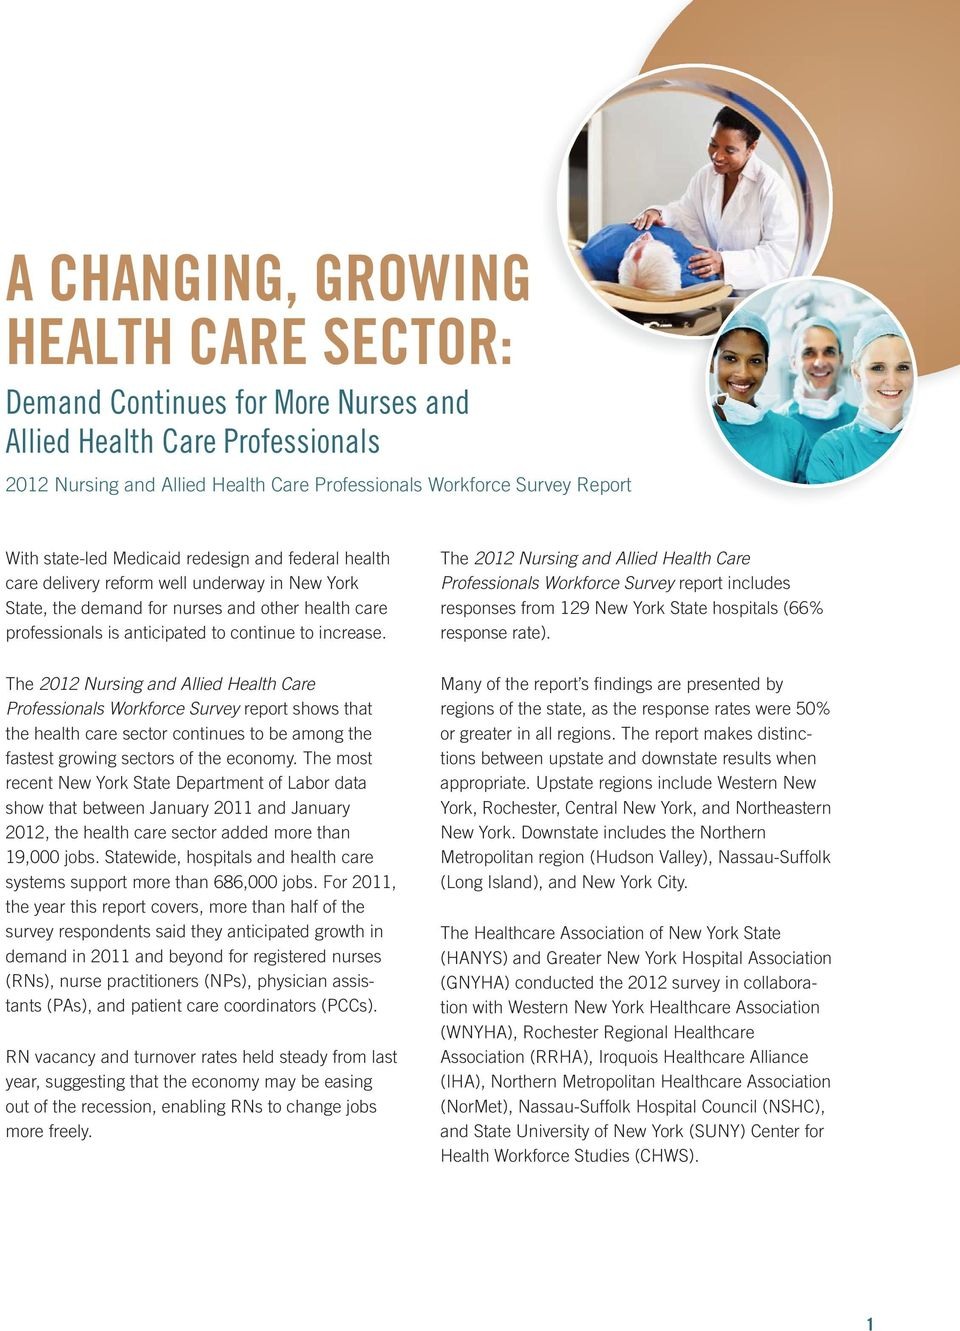 The 2012 Nursing and Allied Health Care Professionals Workforce Survey report shows that the health care sector continues to be among the fastest growing sectors of the economy.